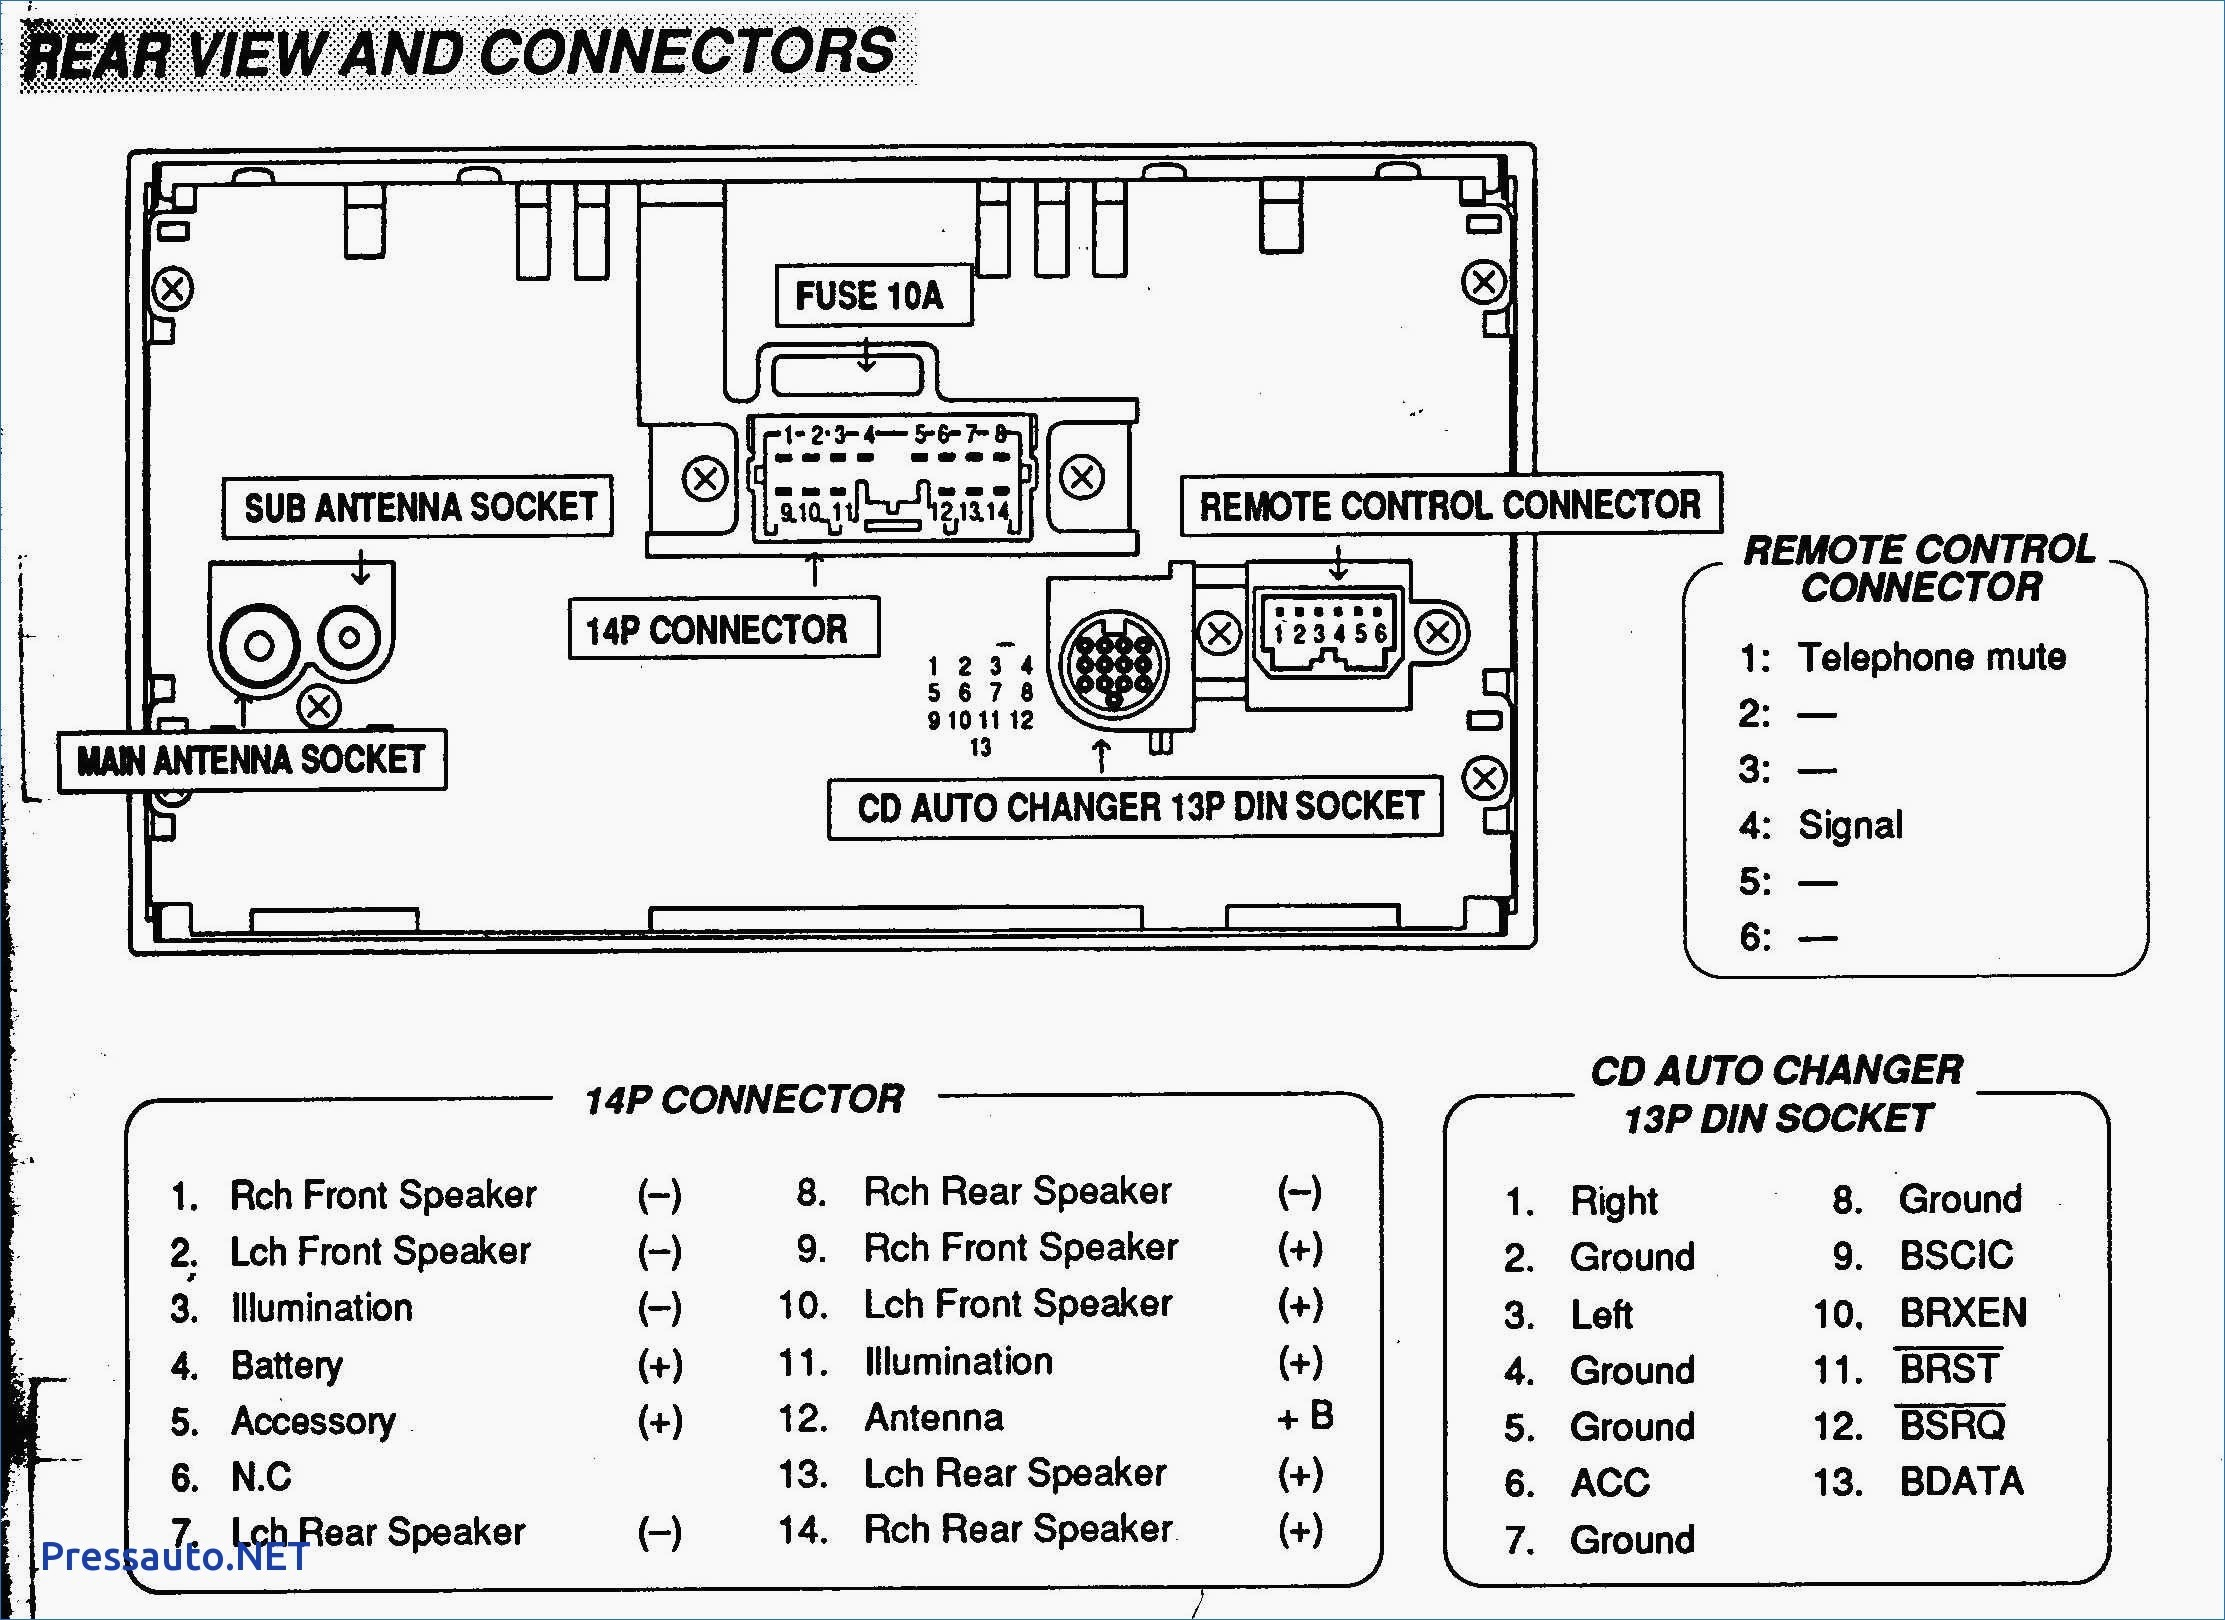 Thermo King Tripac Apu Wiring Diagram thermo King Models Service Manual6 and Tripac Apu Wiring Diagram Of Thermo King Tripac Apu Wiring Diagram